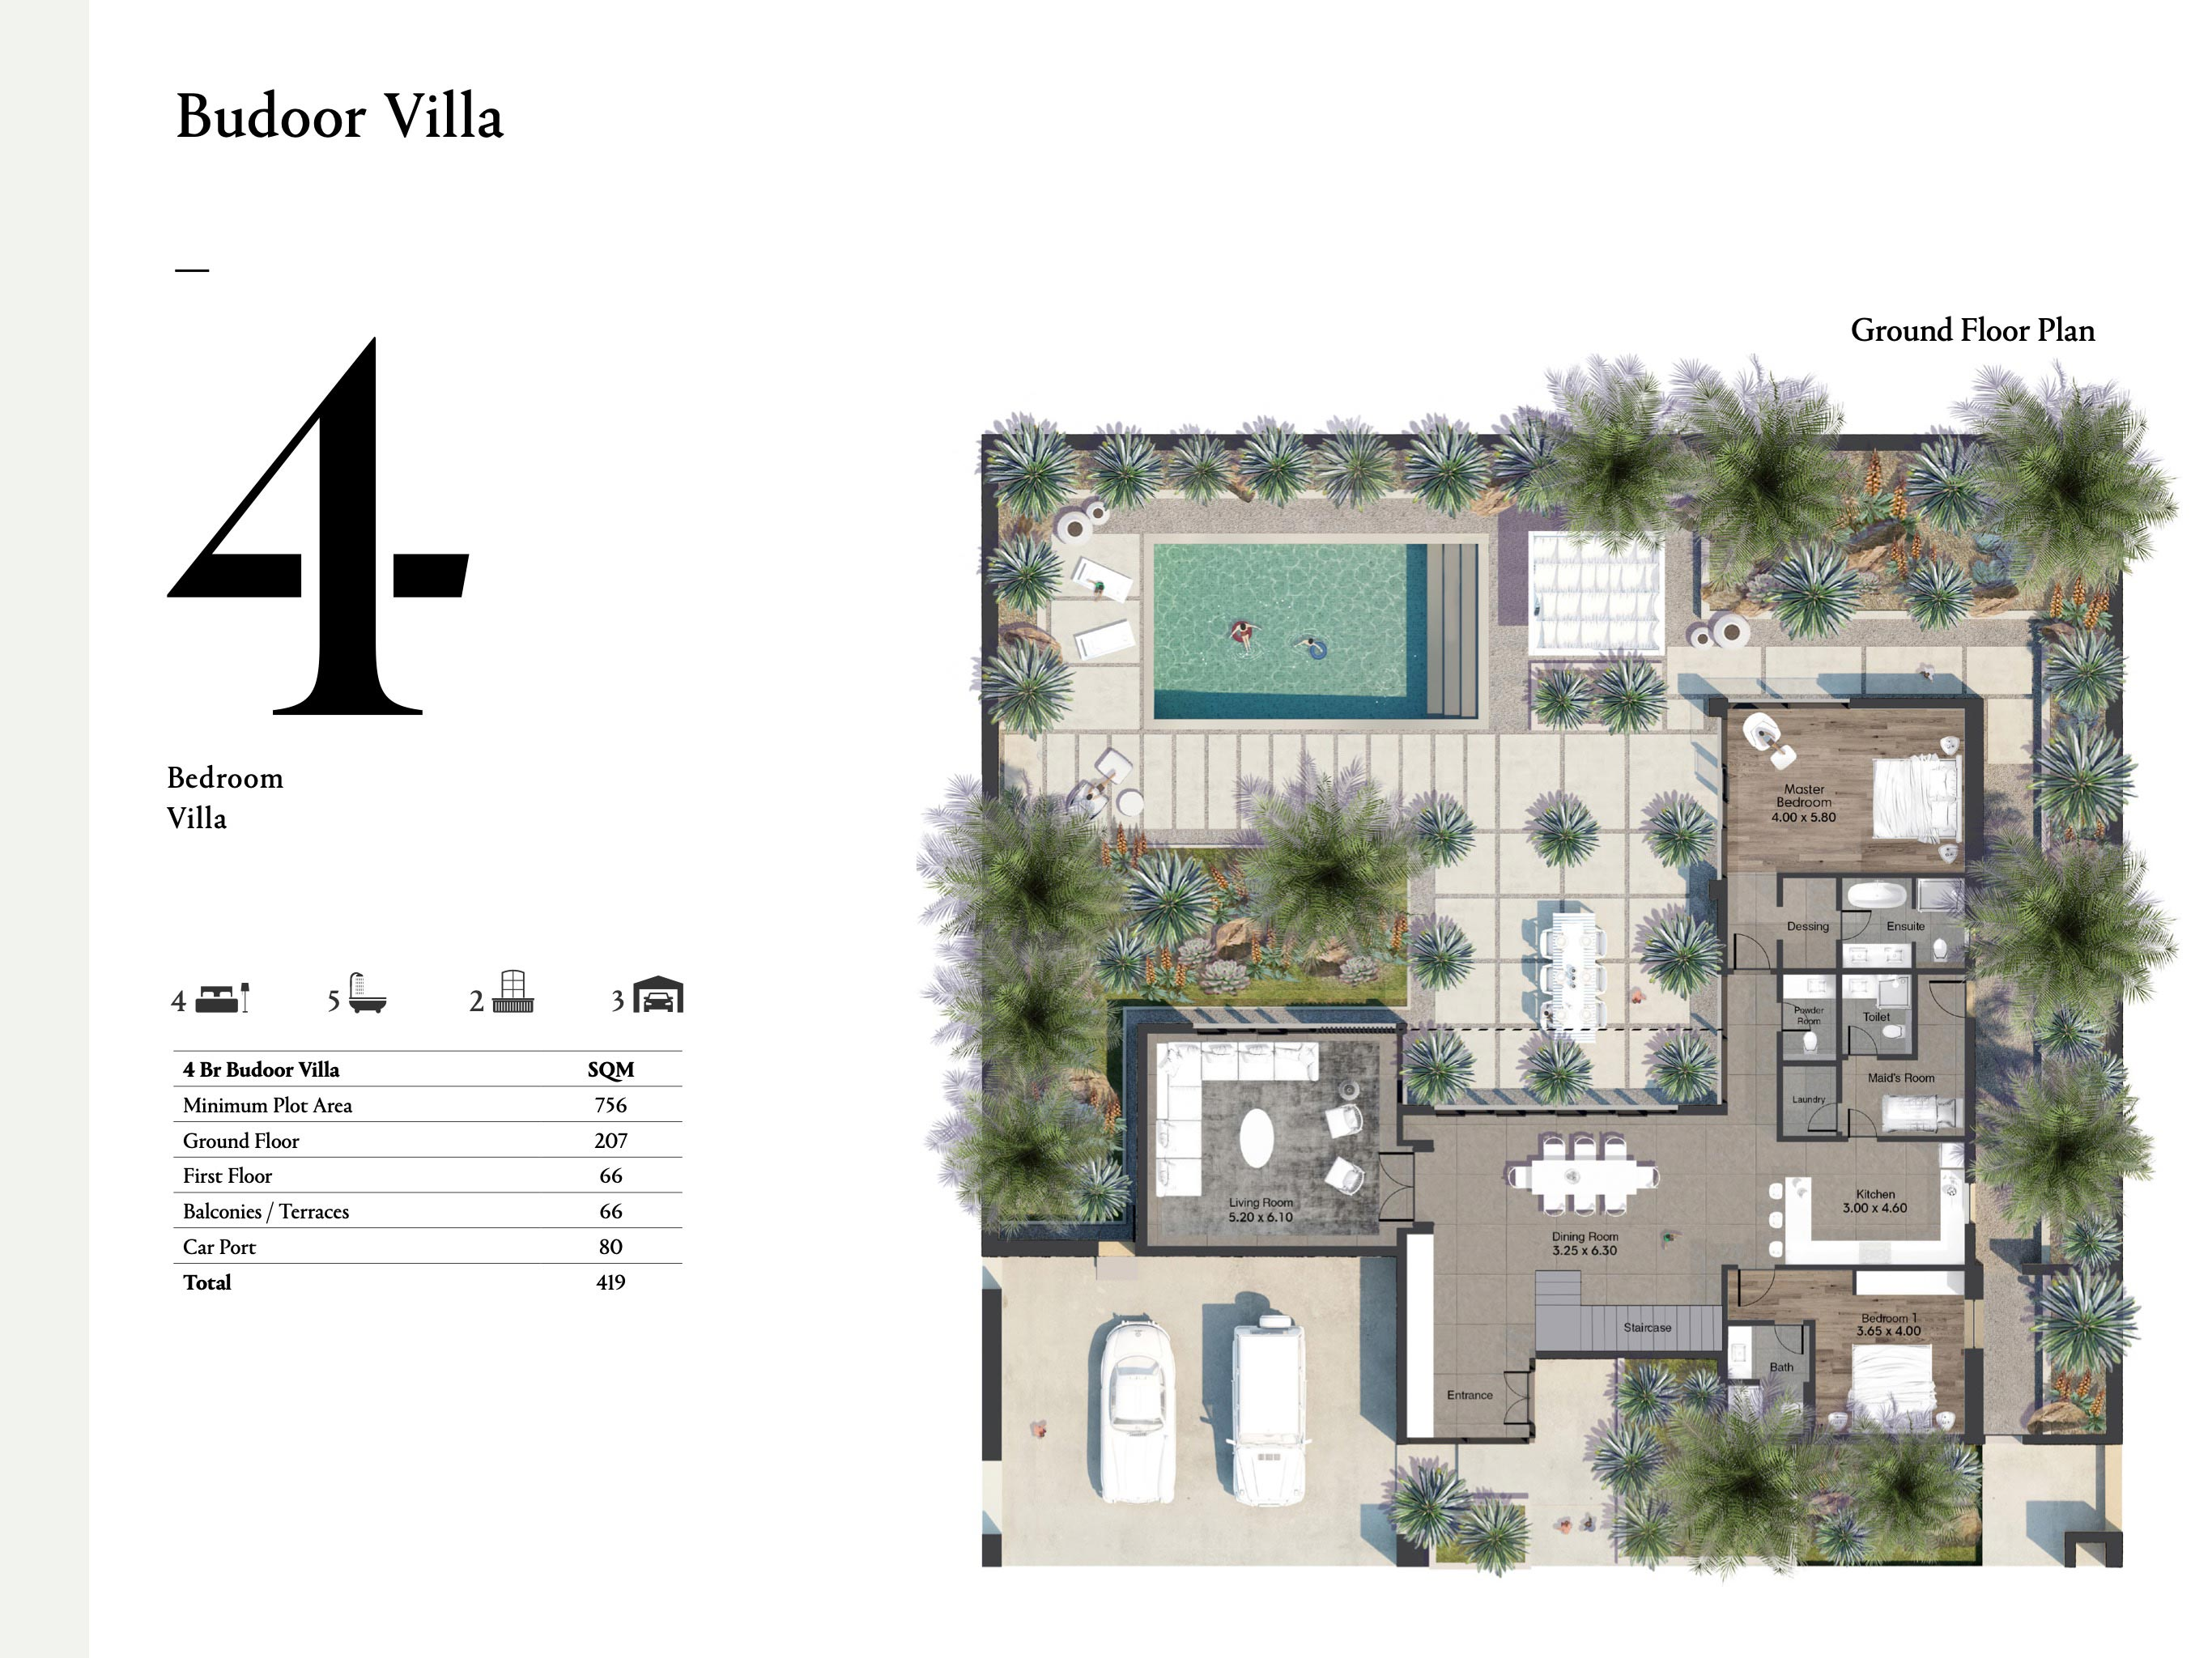 Budoor-Villa-4-Bedroom-Size-419-SQM